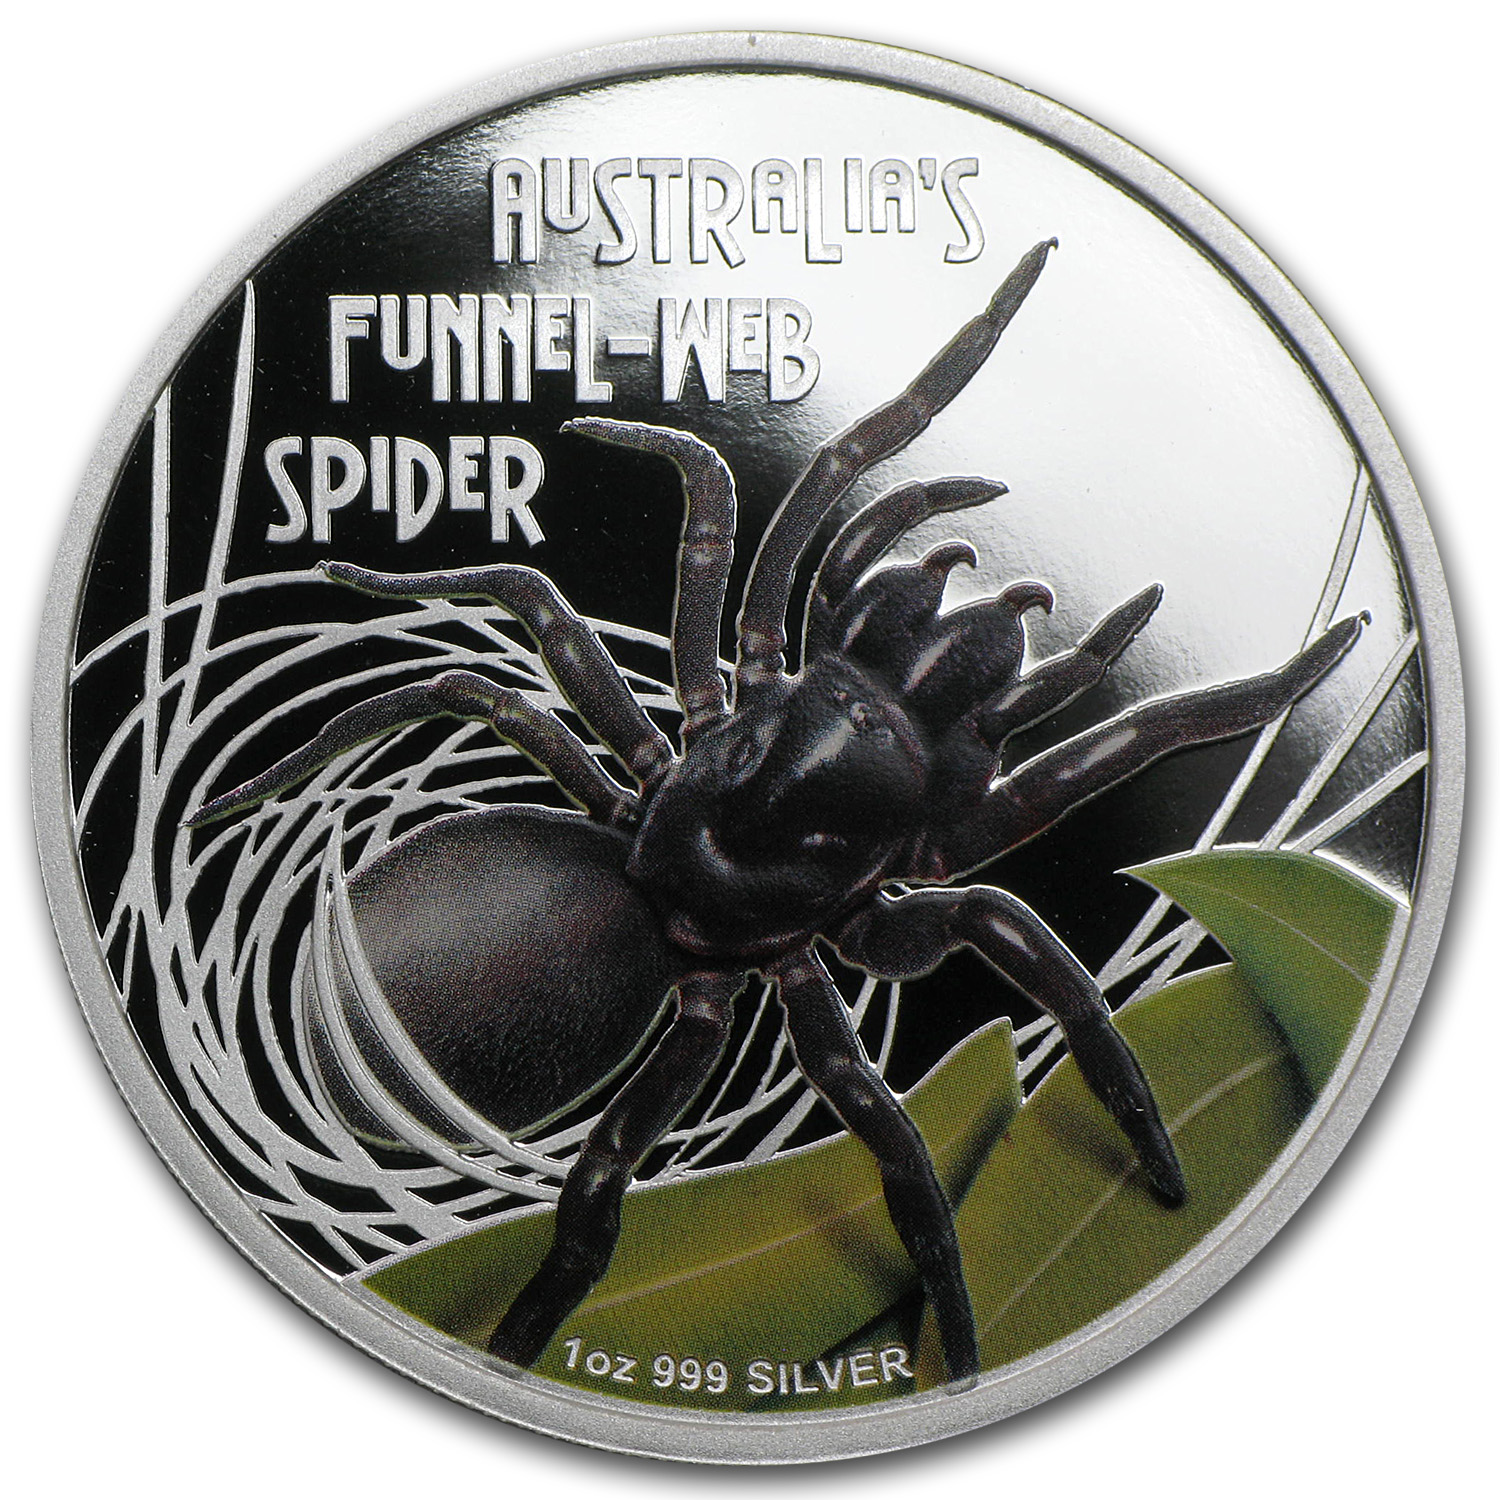 2012 Tuvalu 1 oz Silver Funnel Web Spider Proof